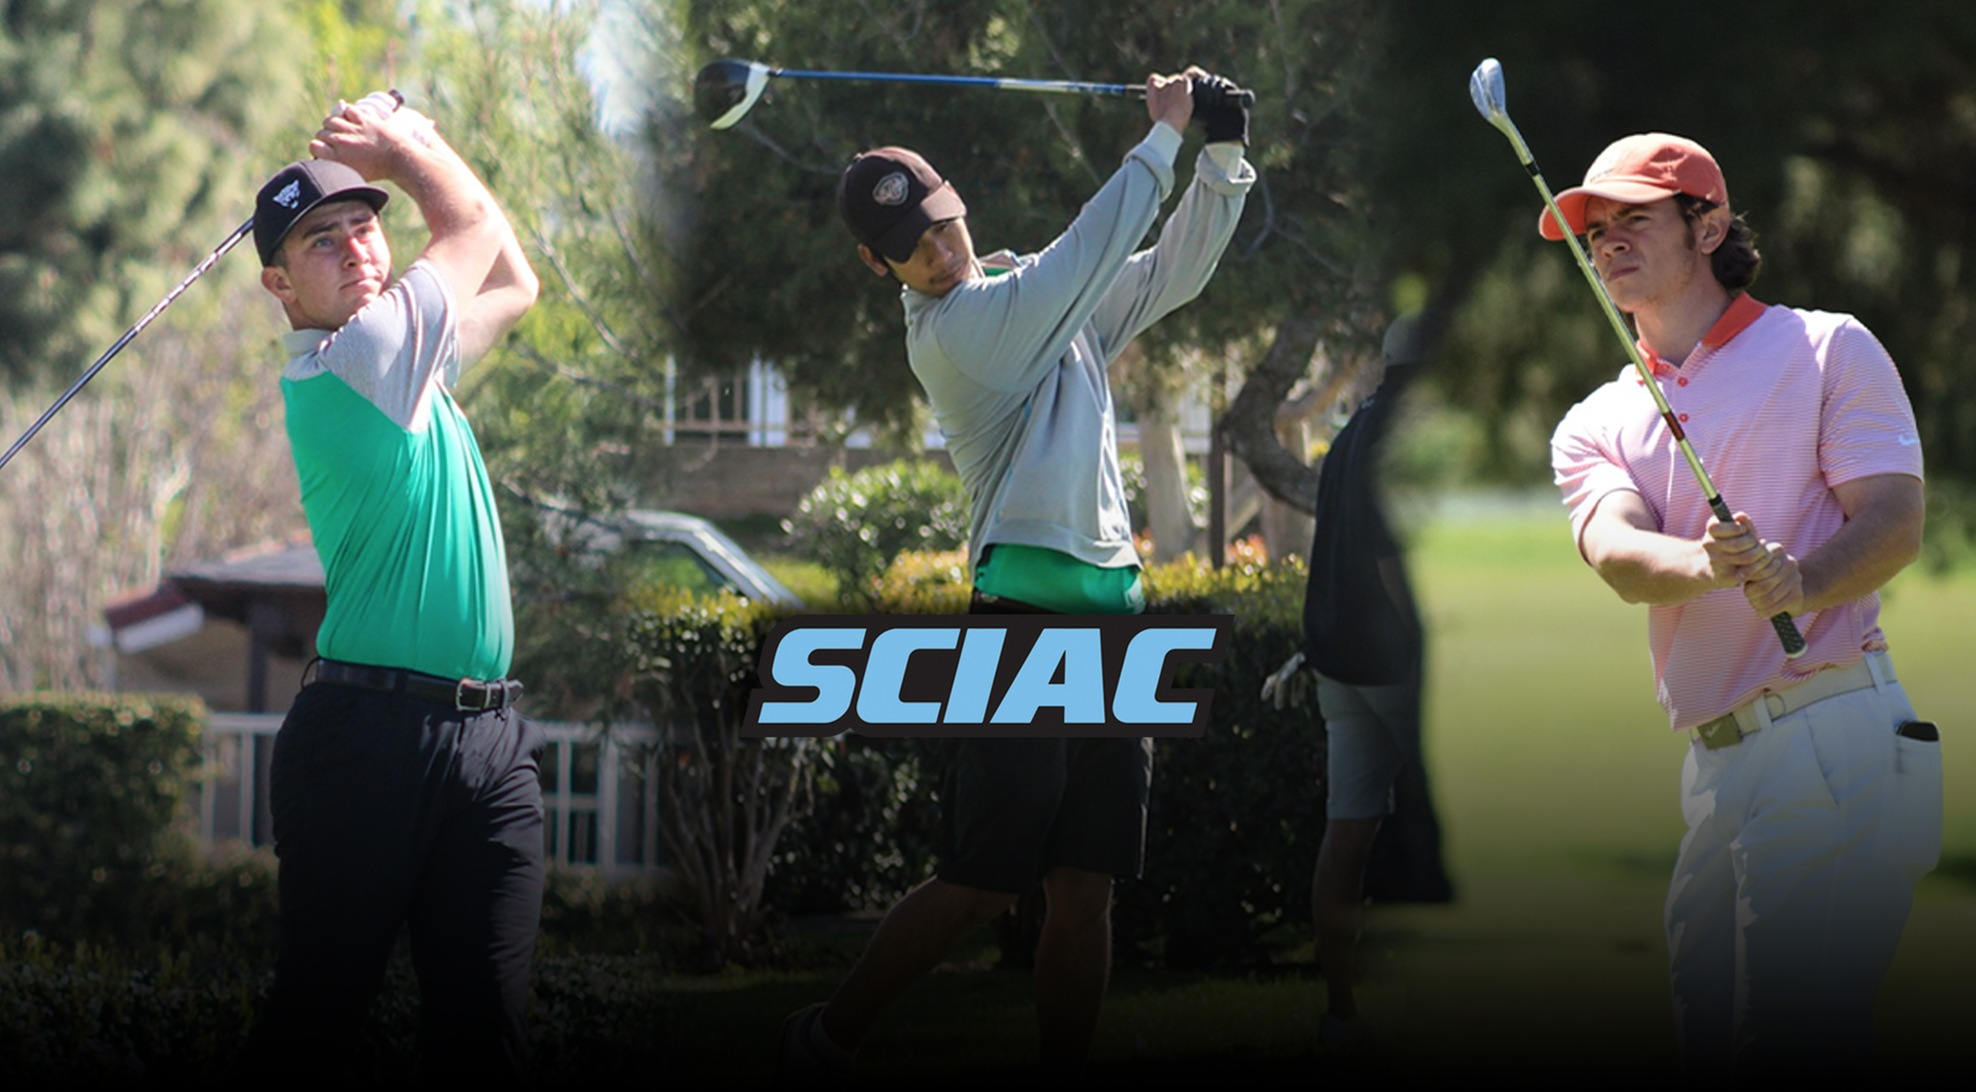 Hussein, Phanomchai, Davis named All-SCIAC